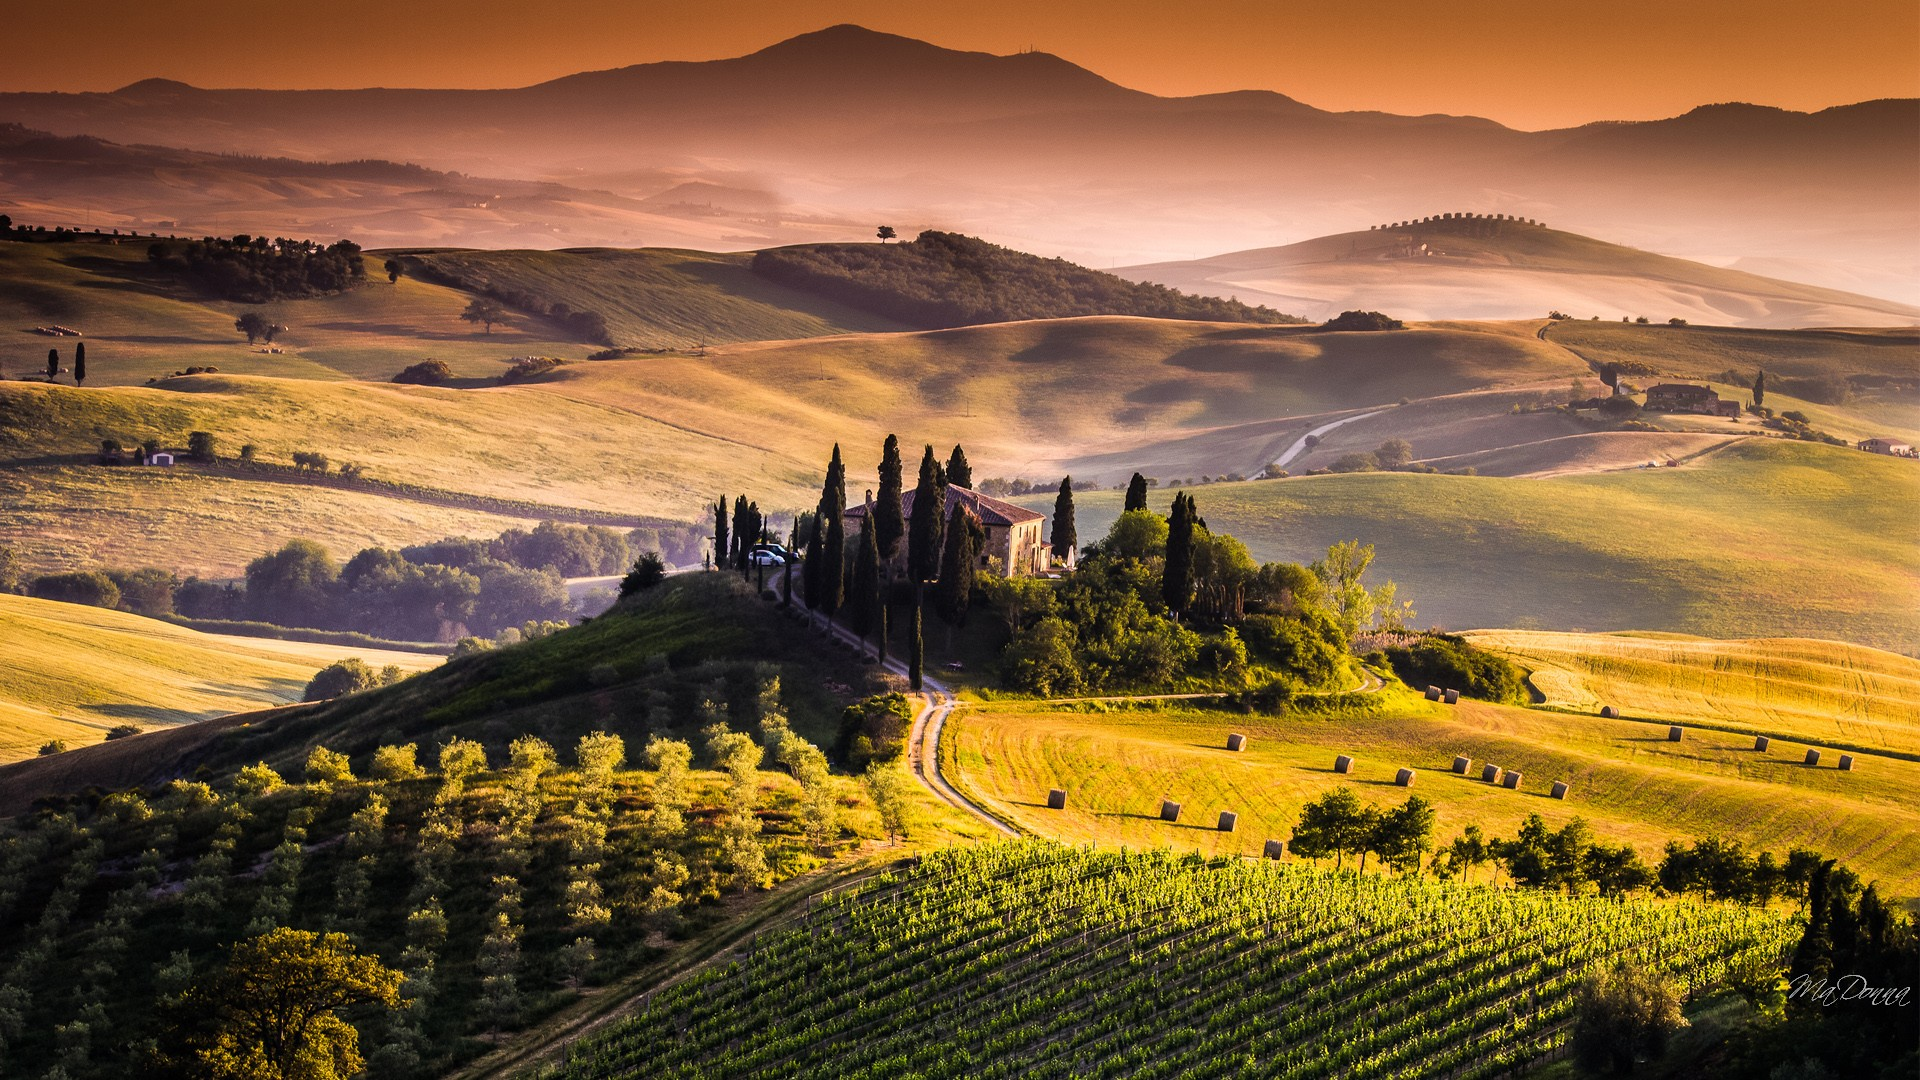 Italian Florence: 10 Top Things To Do In Tuscany